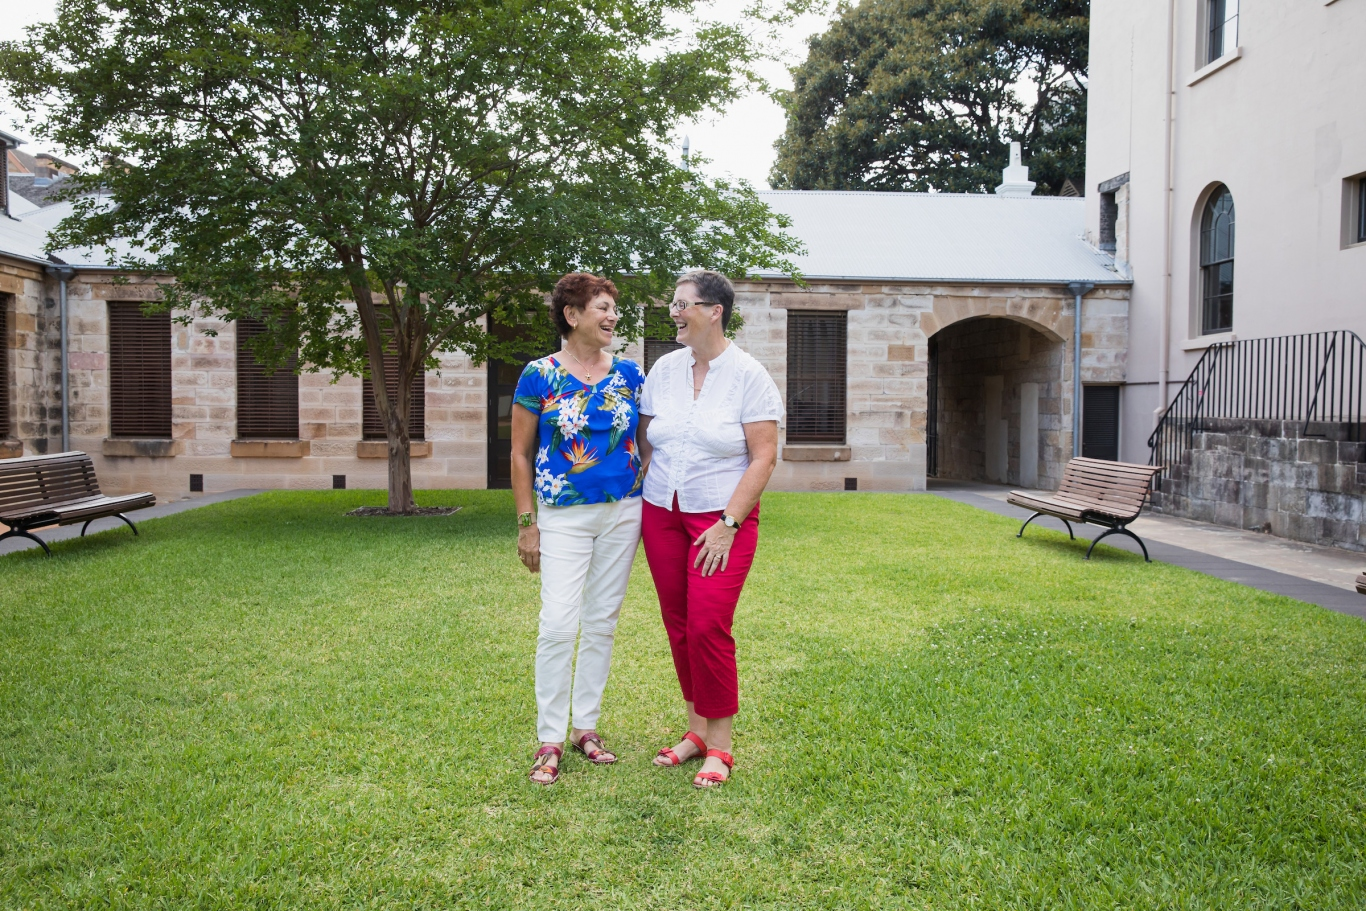 Two women standing on lawn within sandstone courtyard.